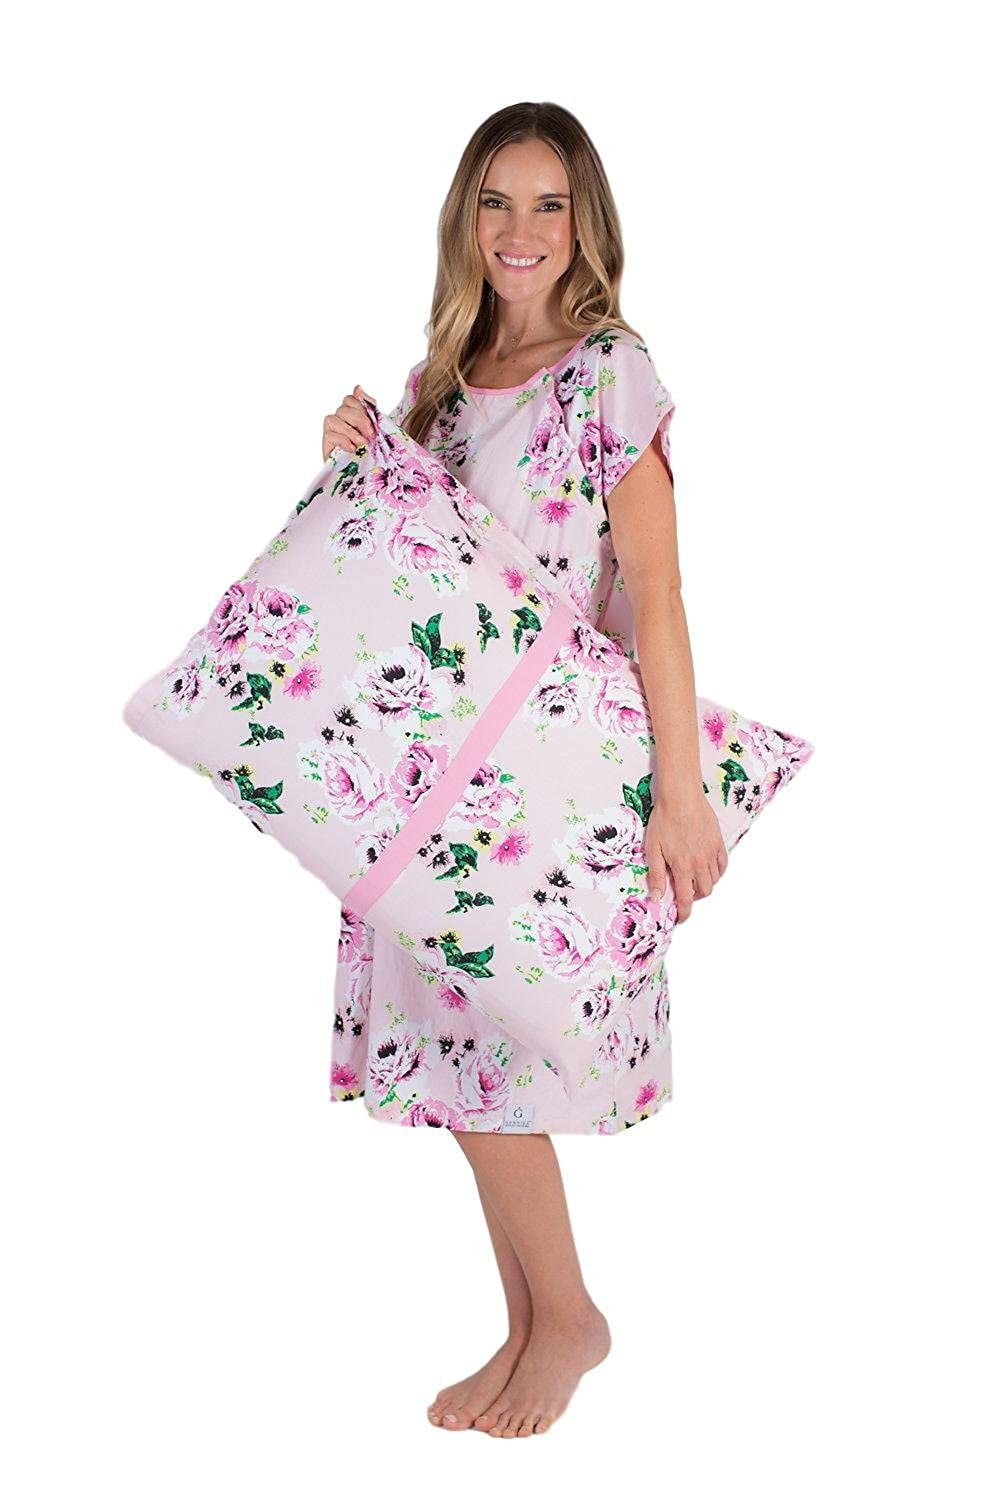 Gownies - Labor Delivery Maternity Hospital Gown Pillowcase Set ...